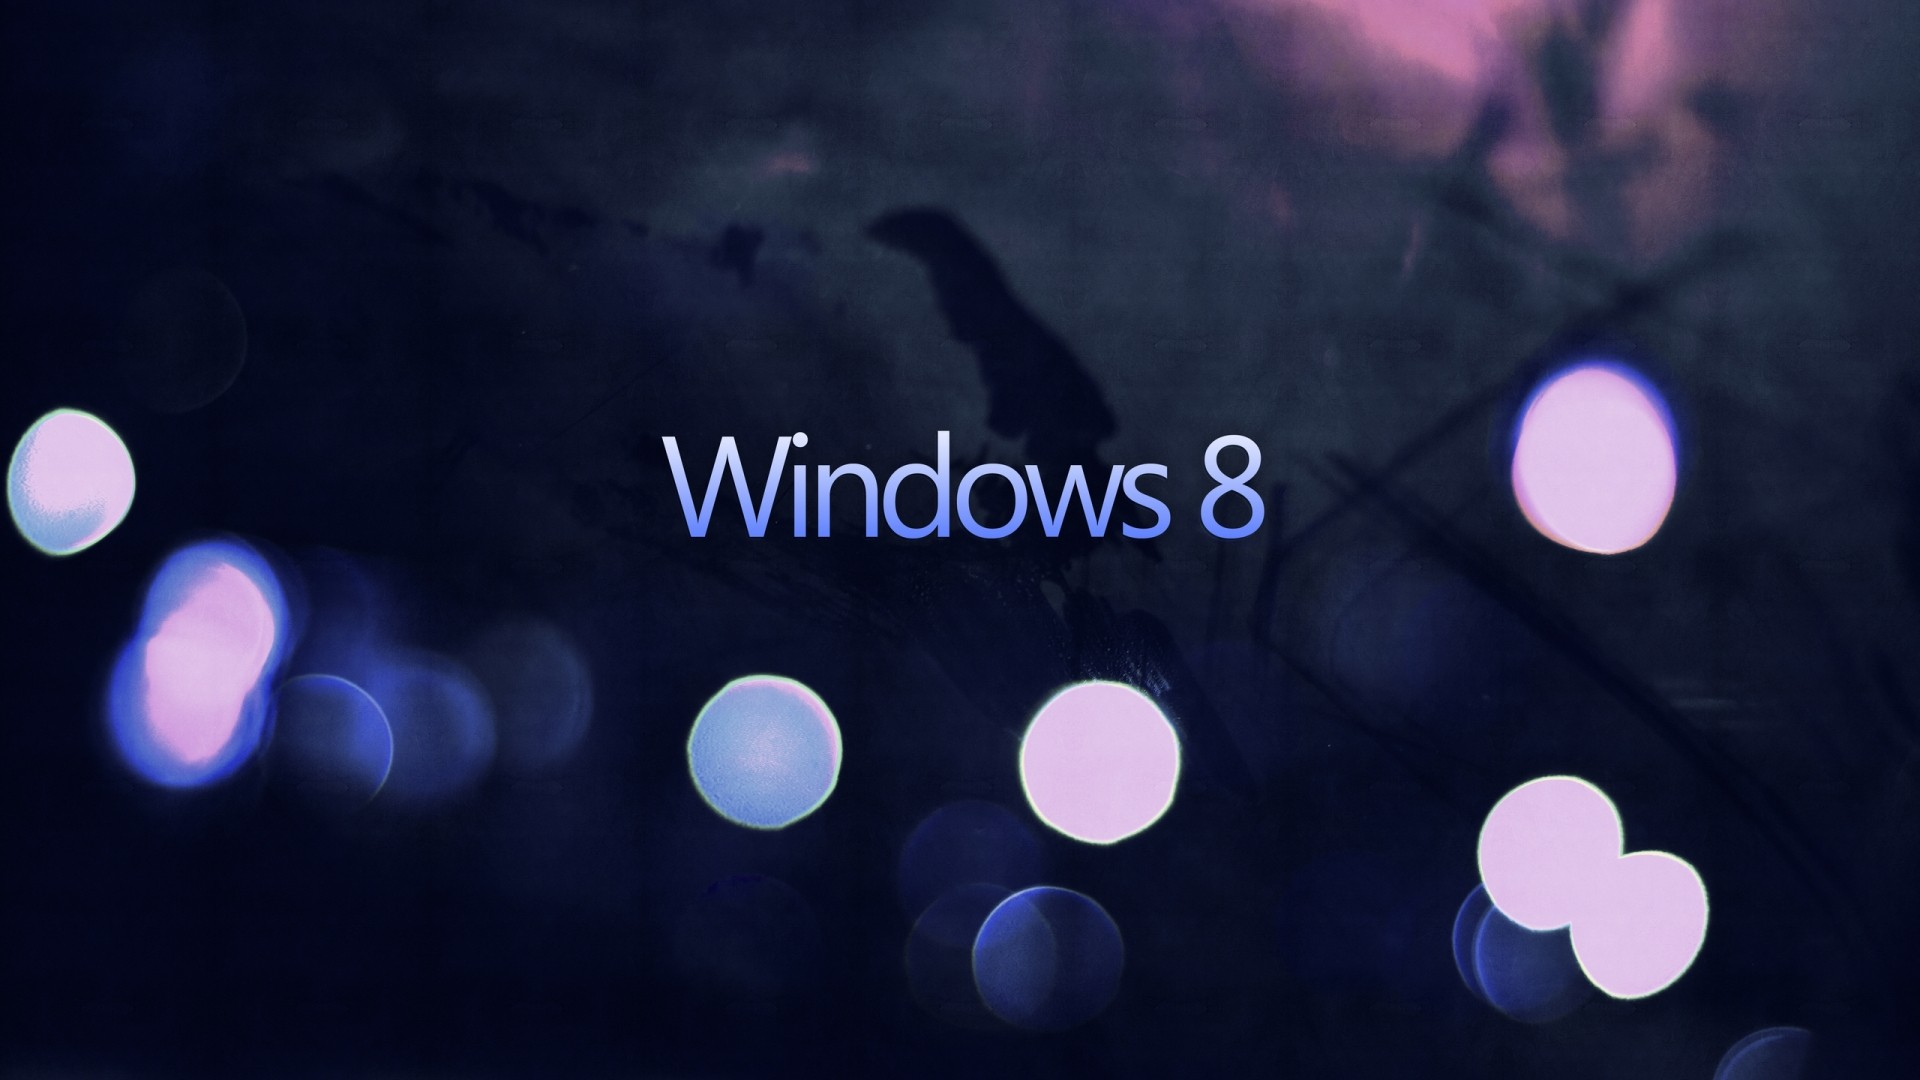 WINDOWS 8 BG02